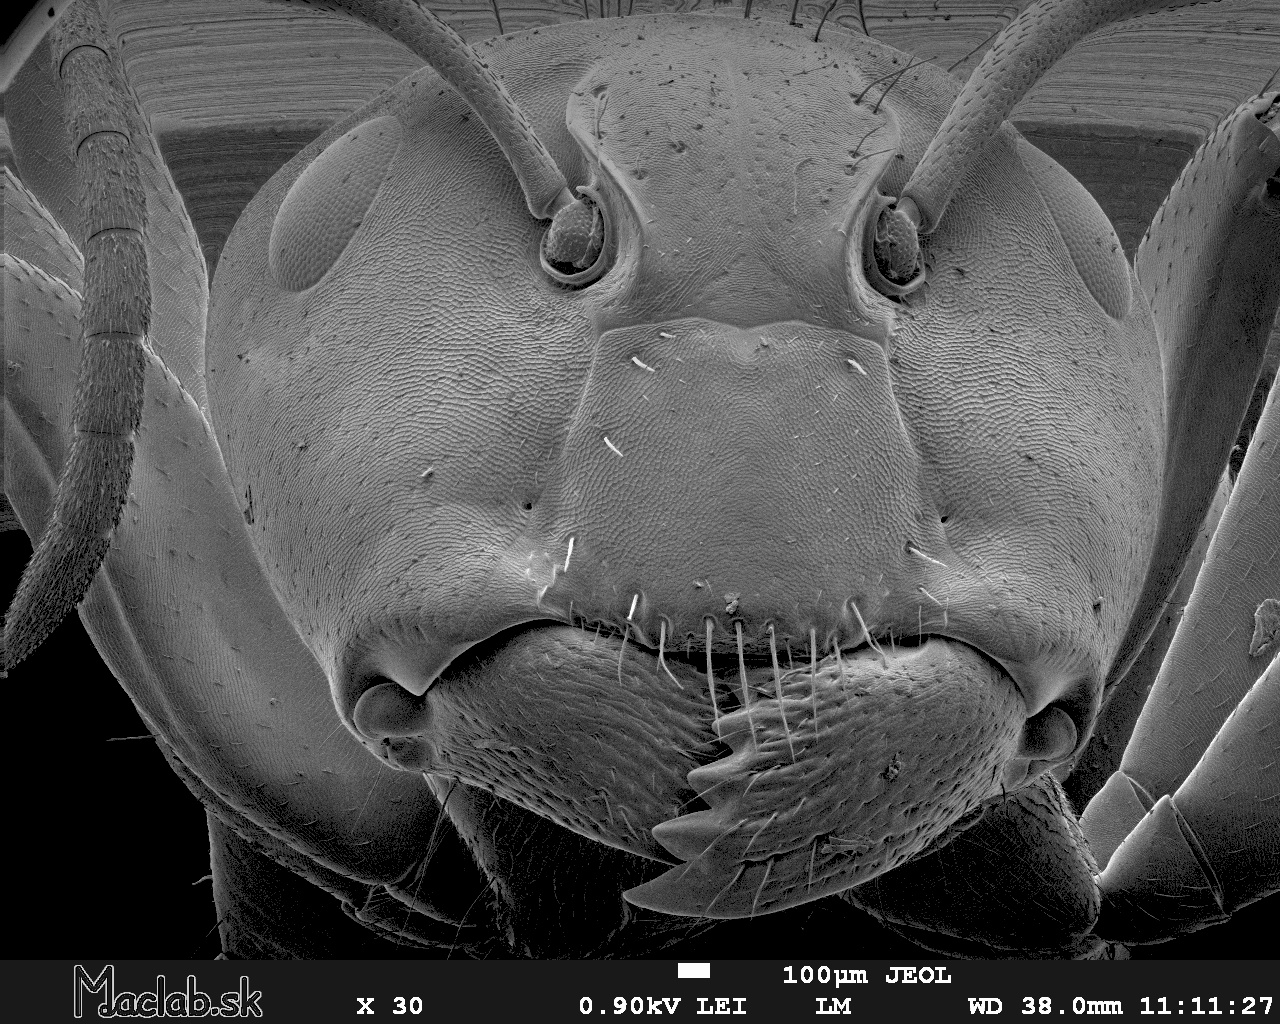 ant under a microscope - photo #4